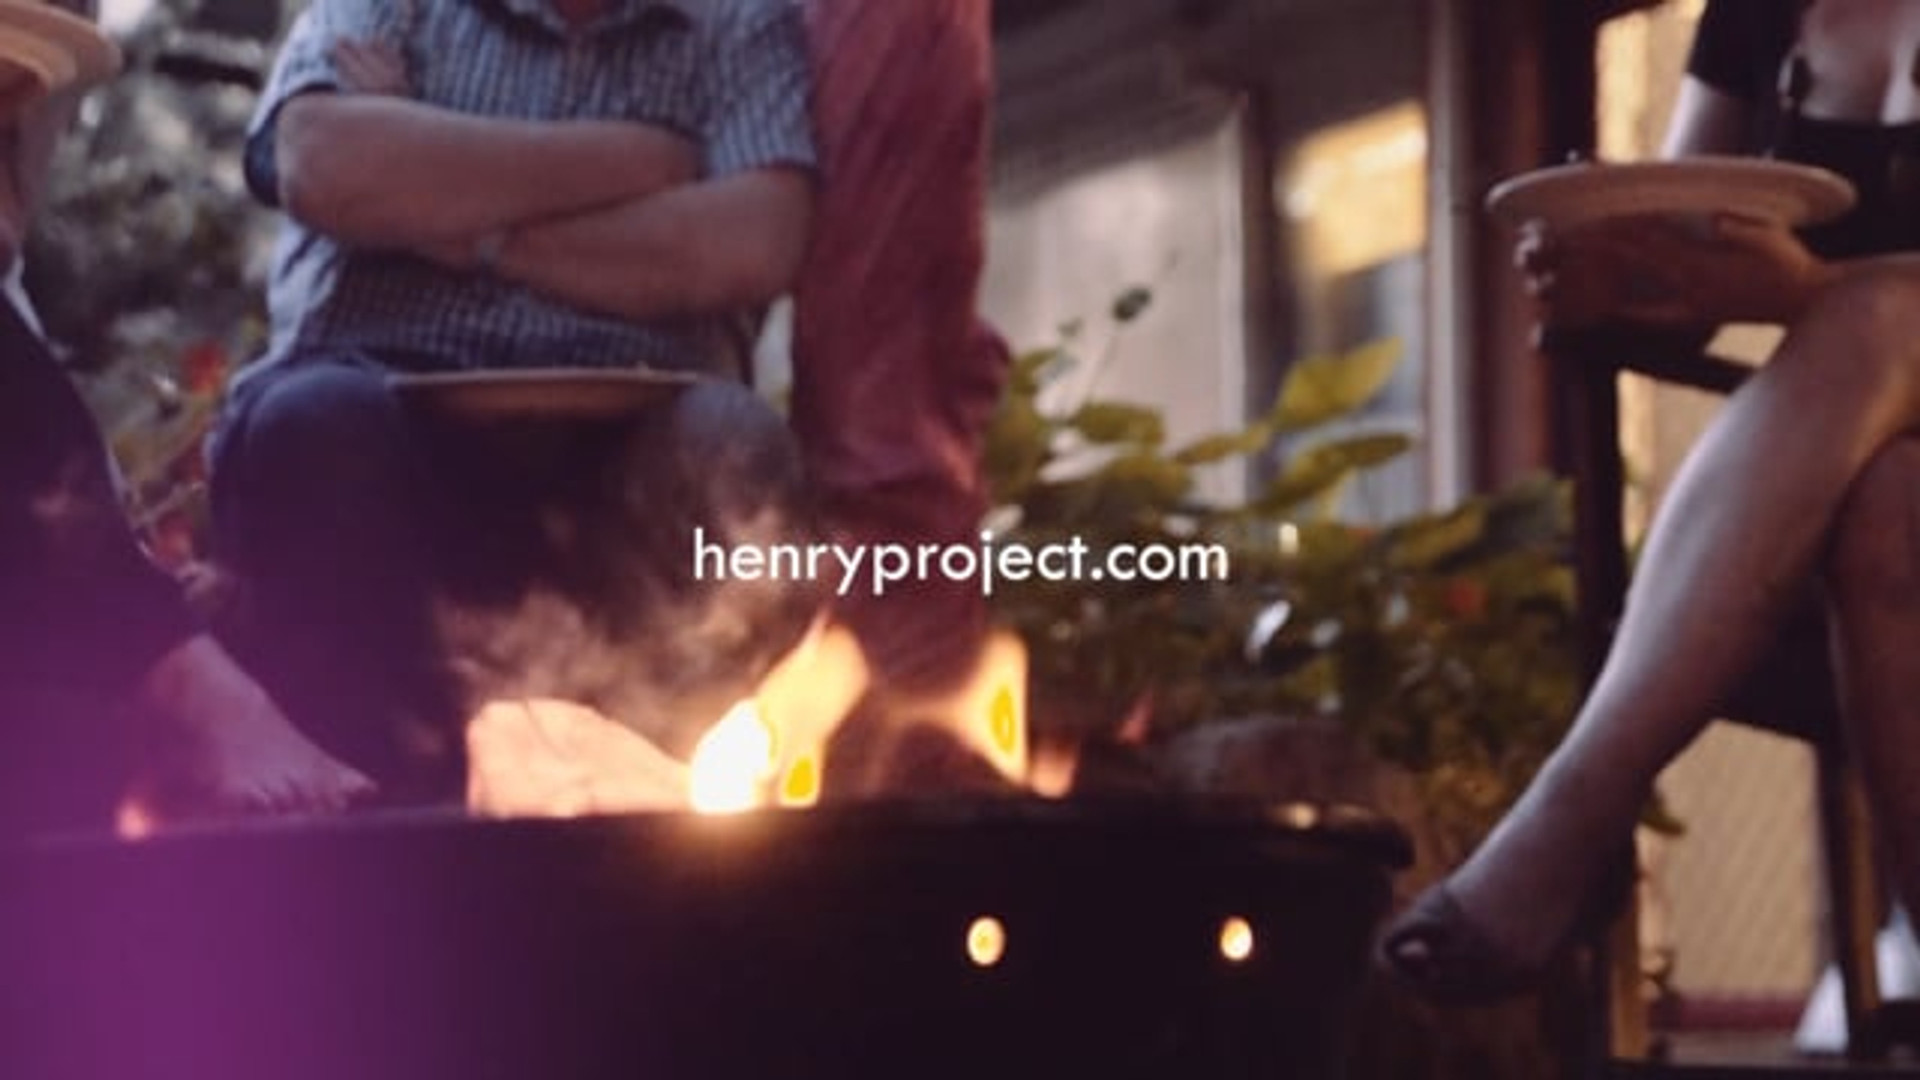 The Henry Project - Living Together, Living Better